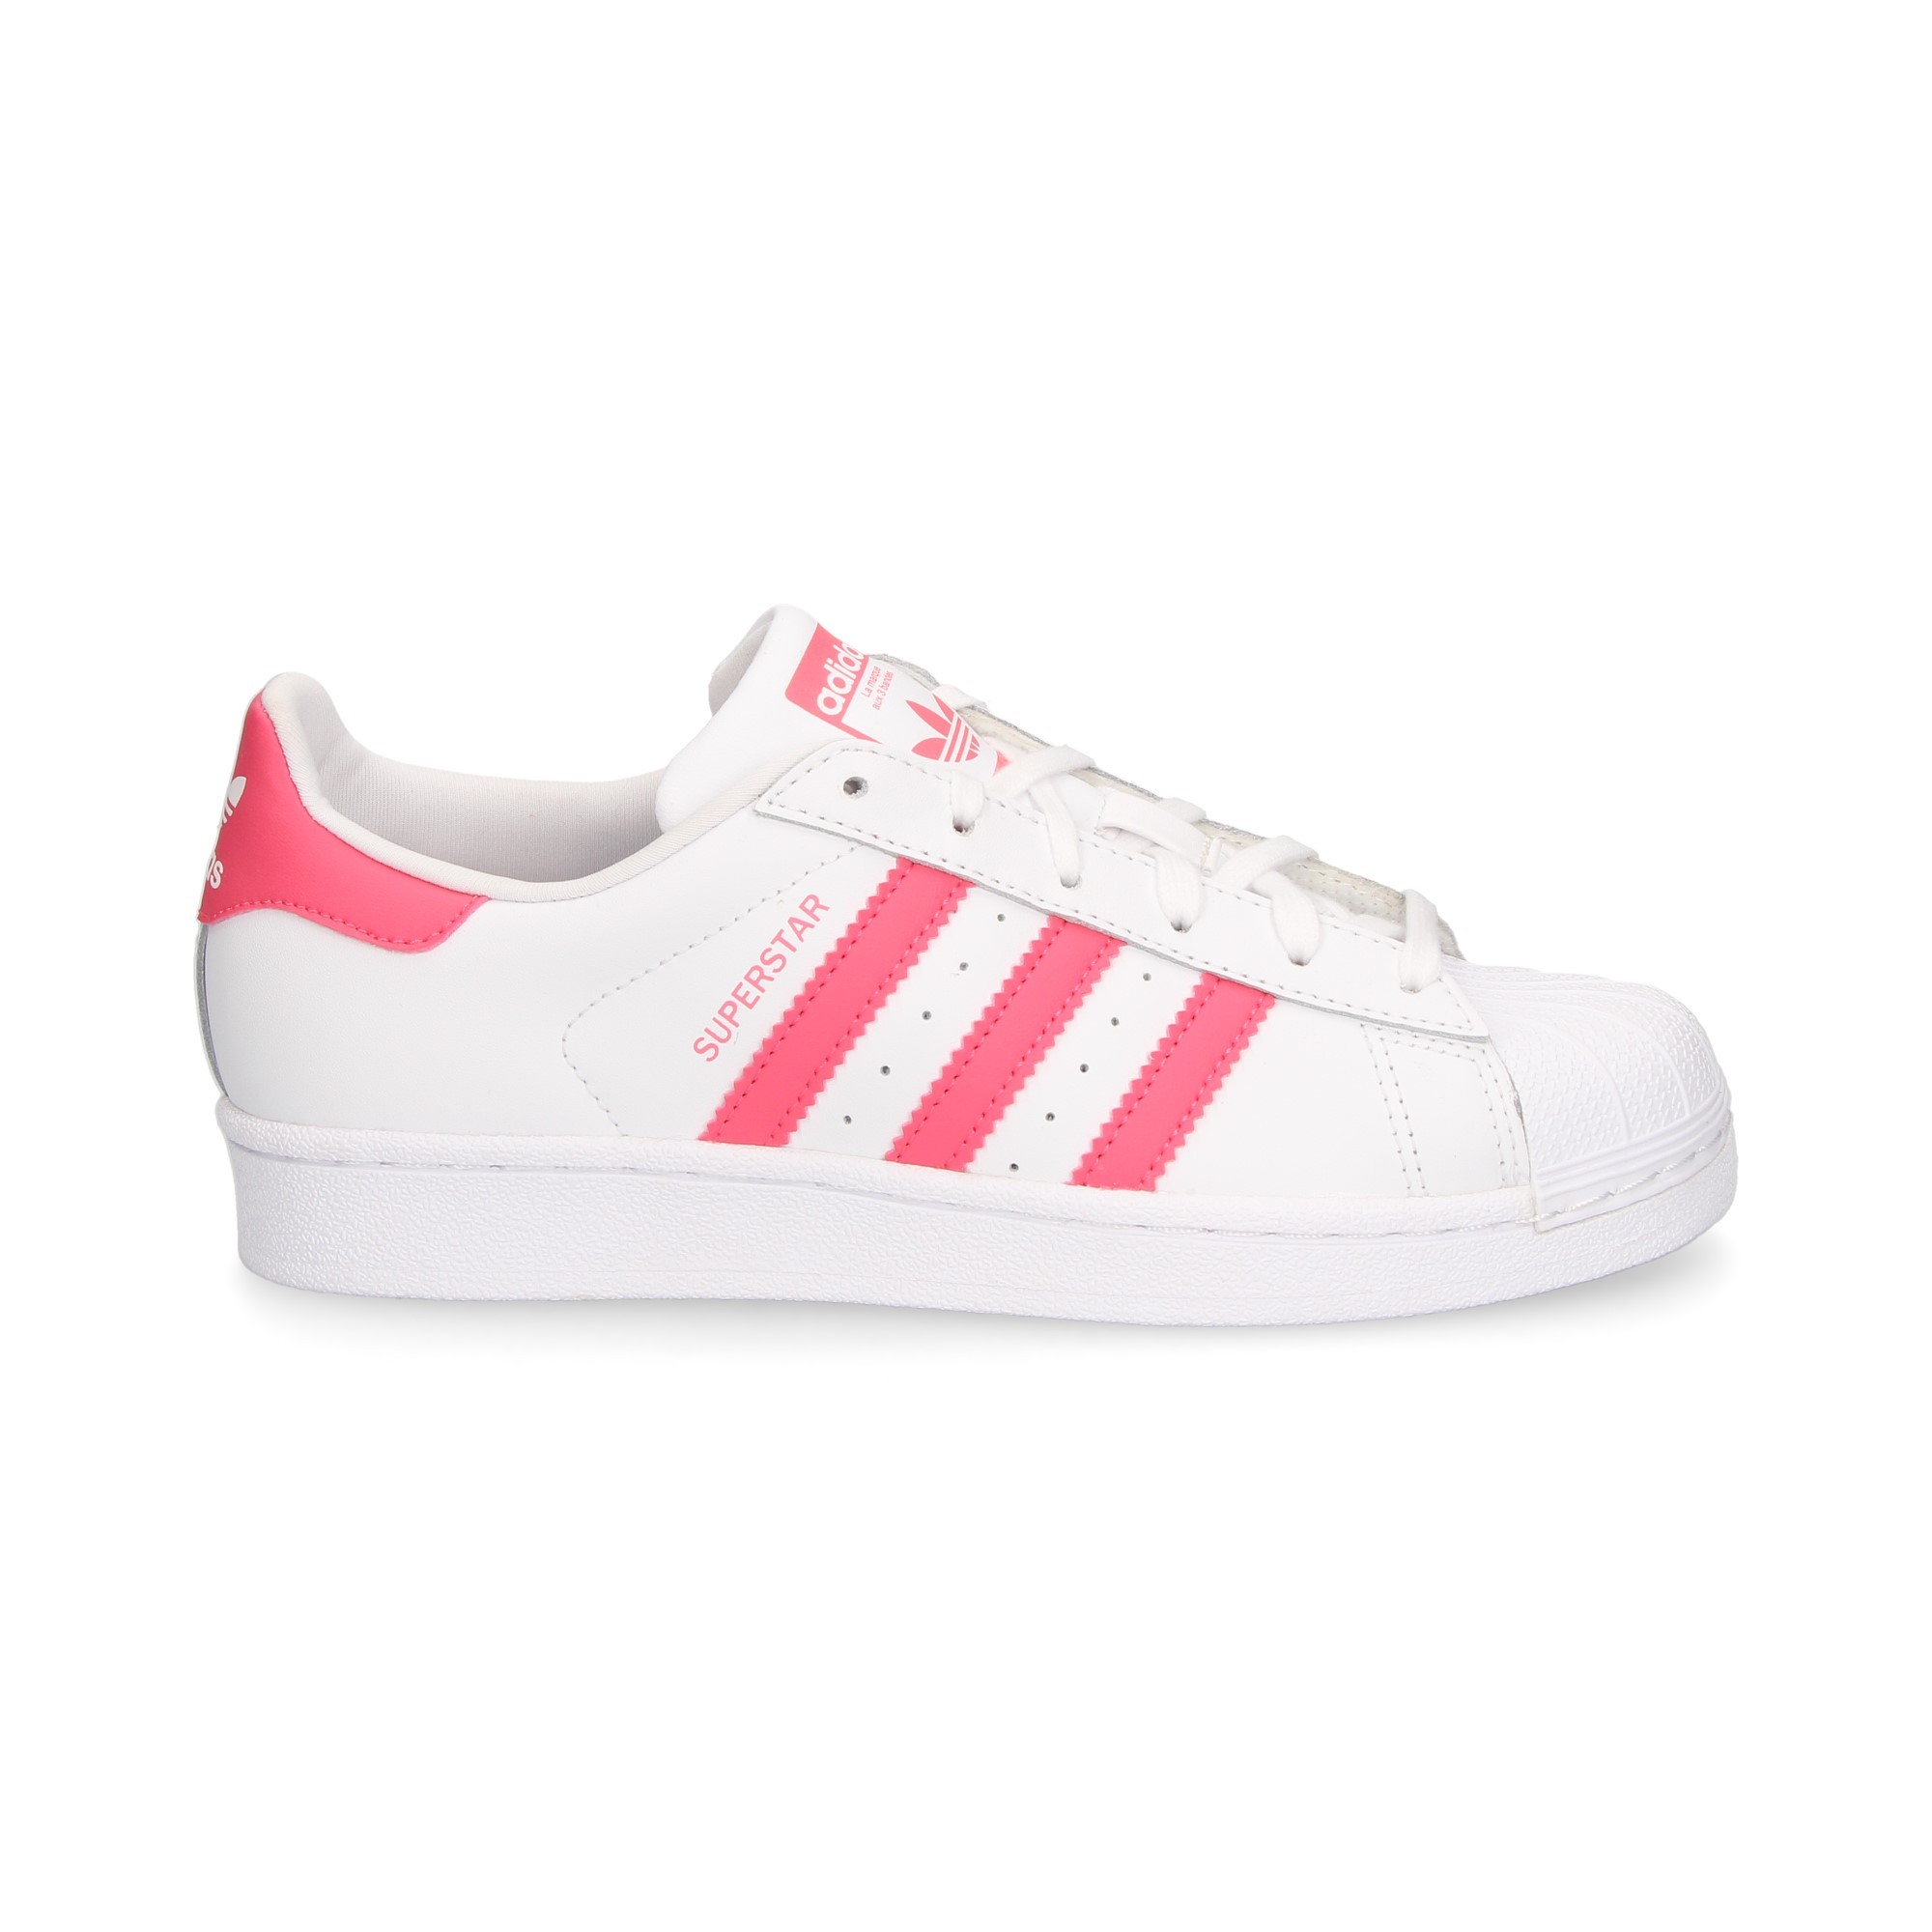 ADIDAS Baskets filles SUPERSTAR J BLANCO